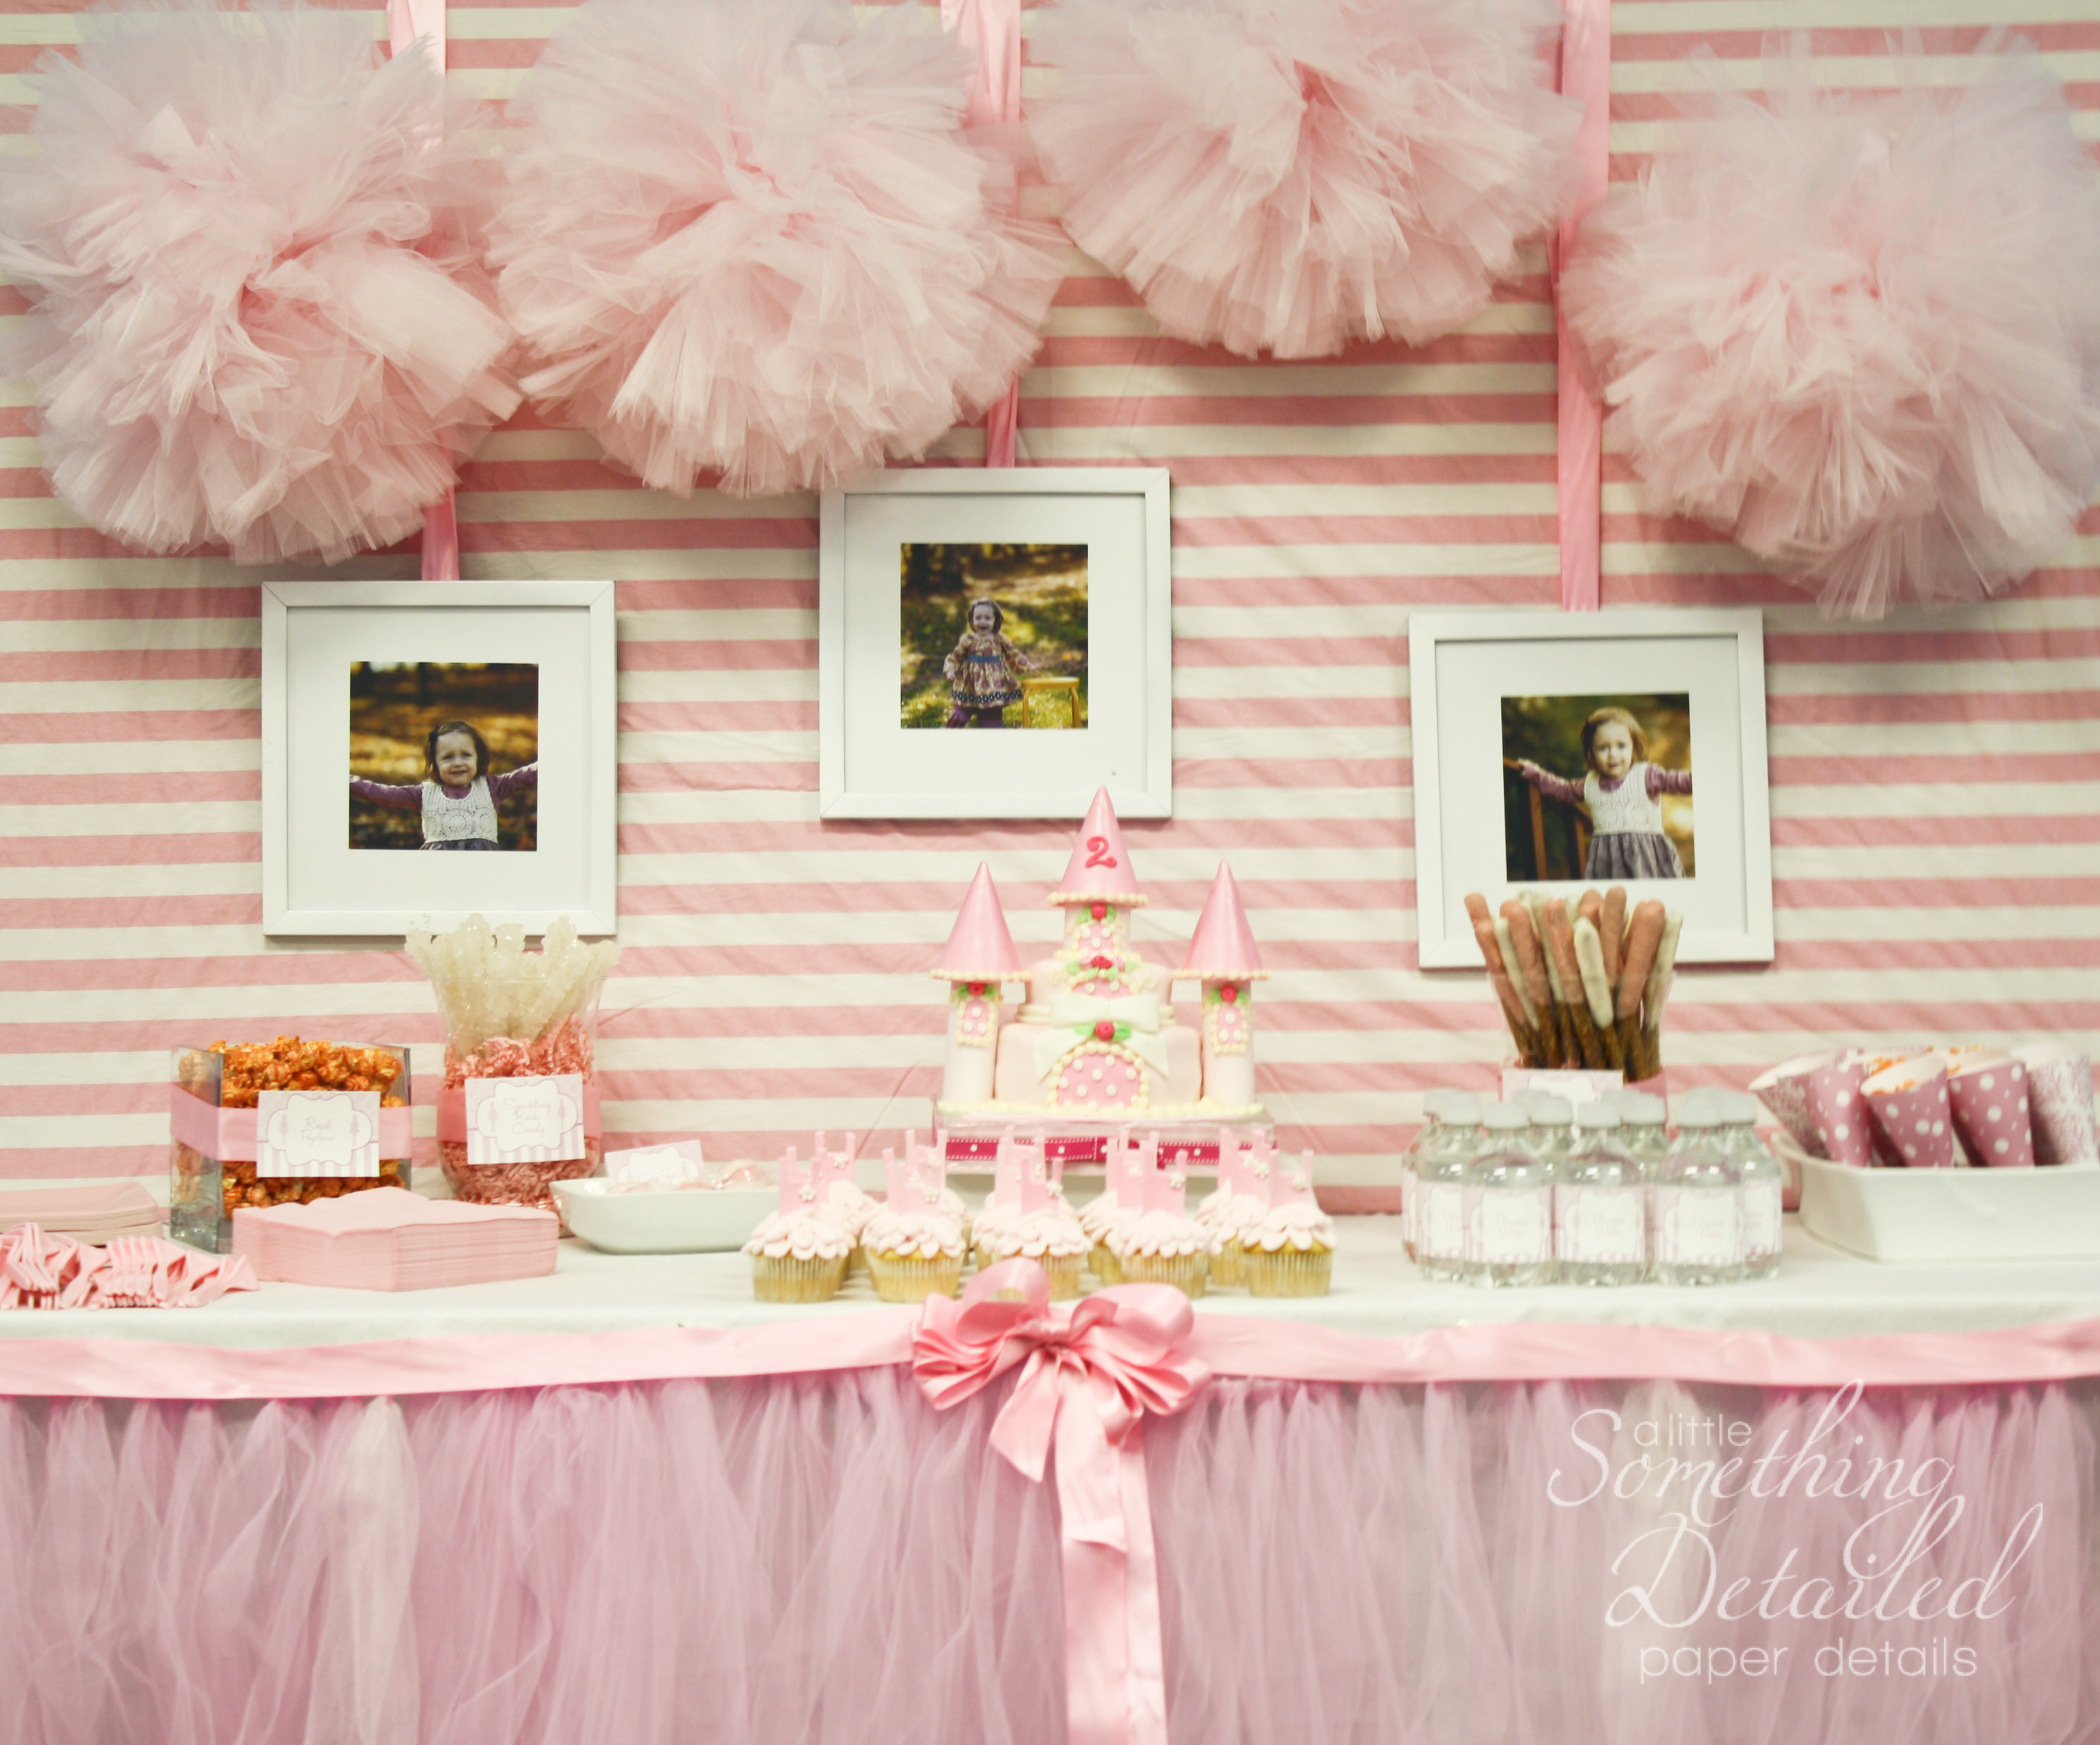 Best ideas about Princess Themed Birthday Party . Save or Pin birthday party Now.